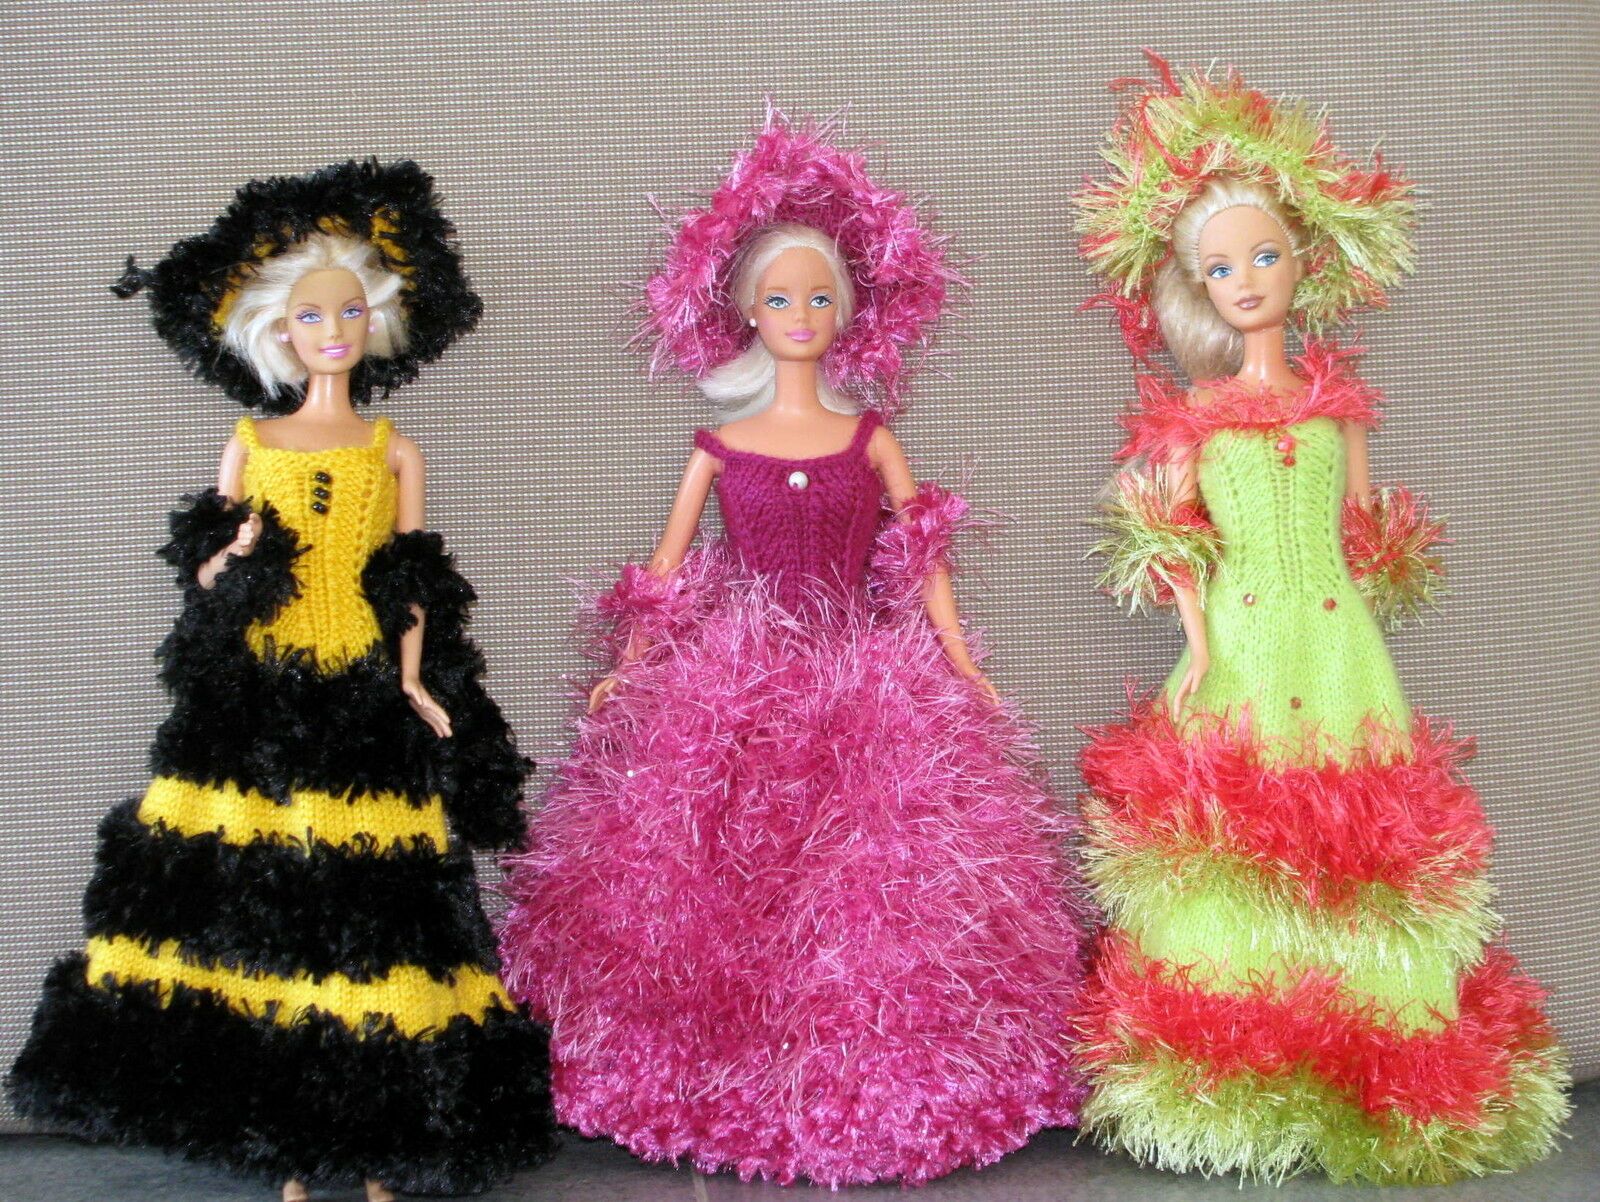 3 robes de poupée barbie modèles uniques faites main made in France chapeau boa8